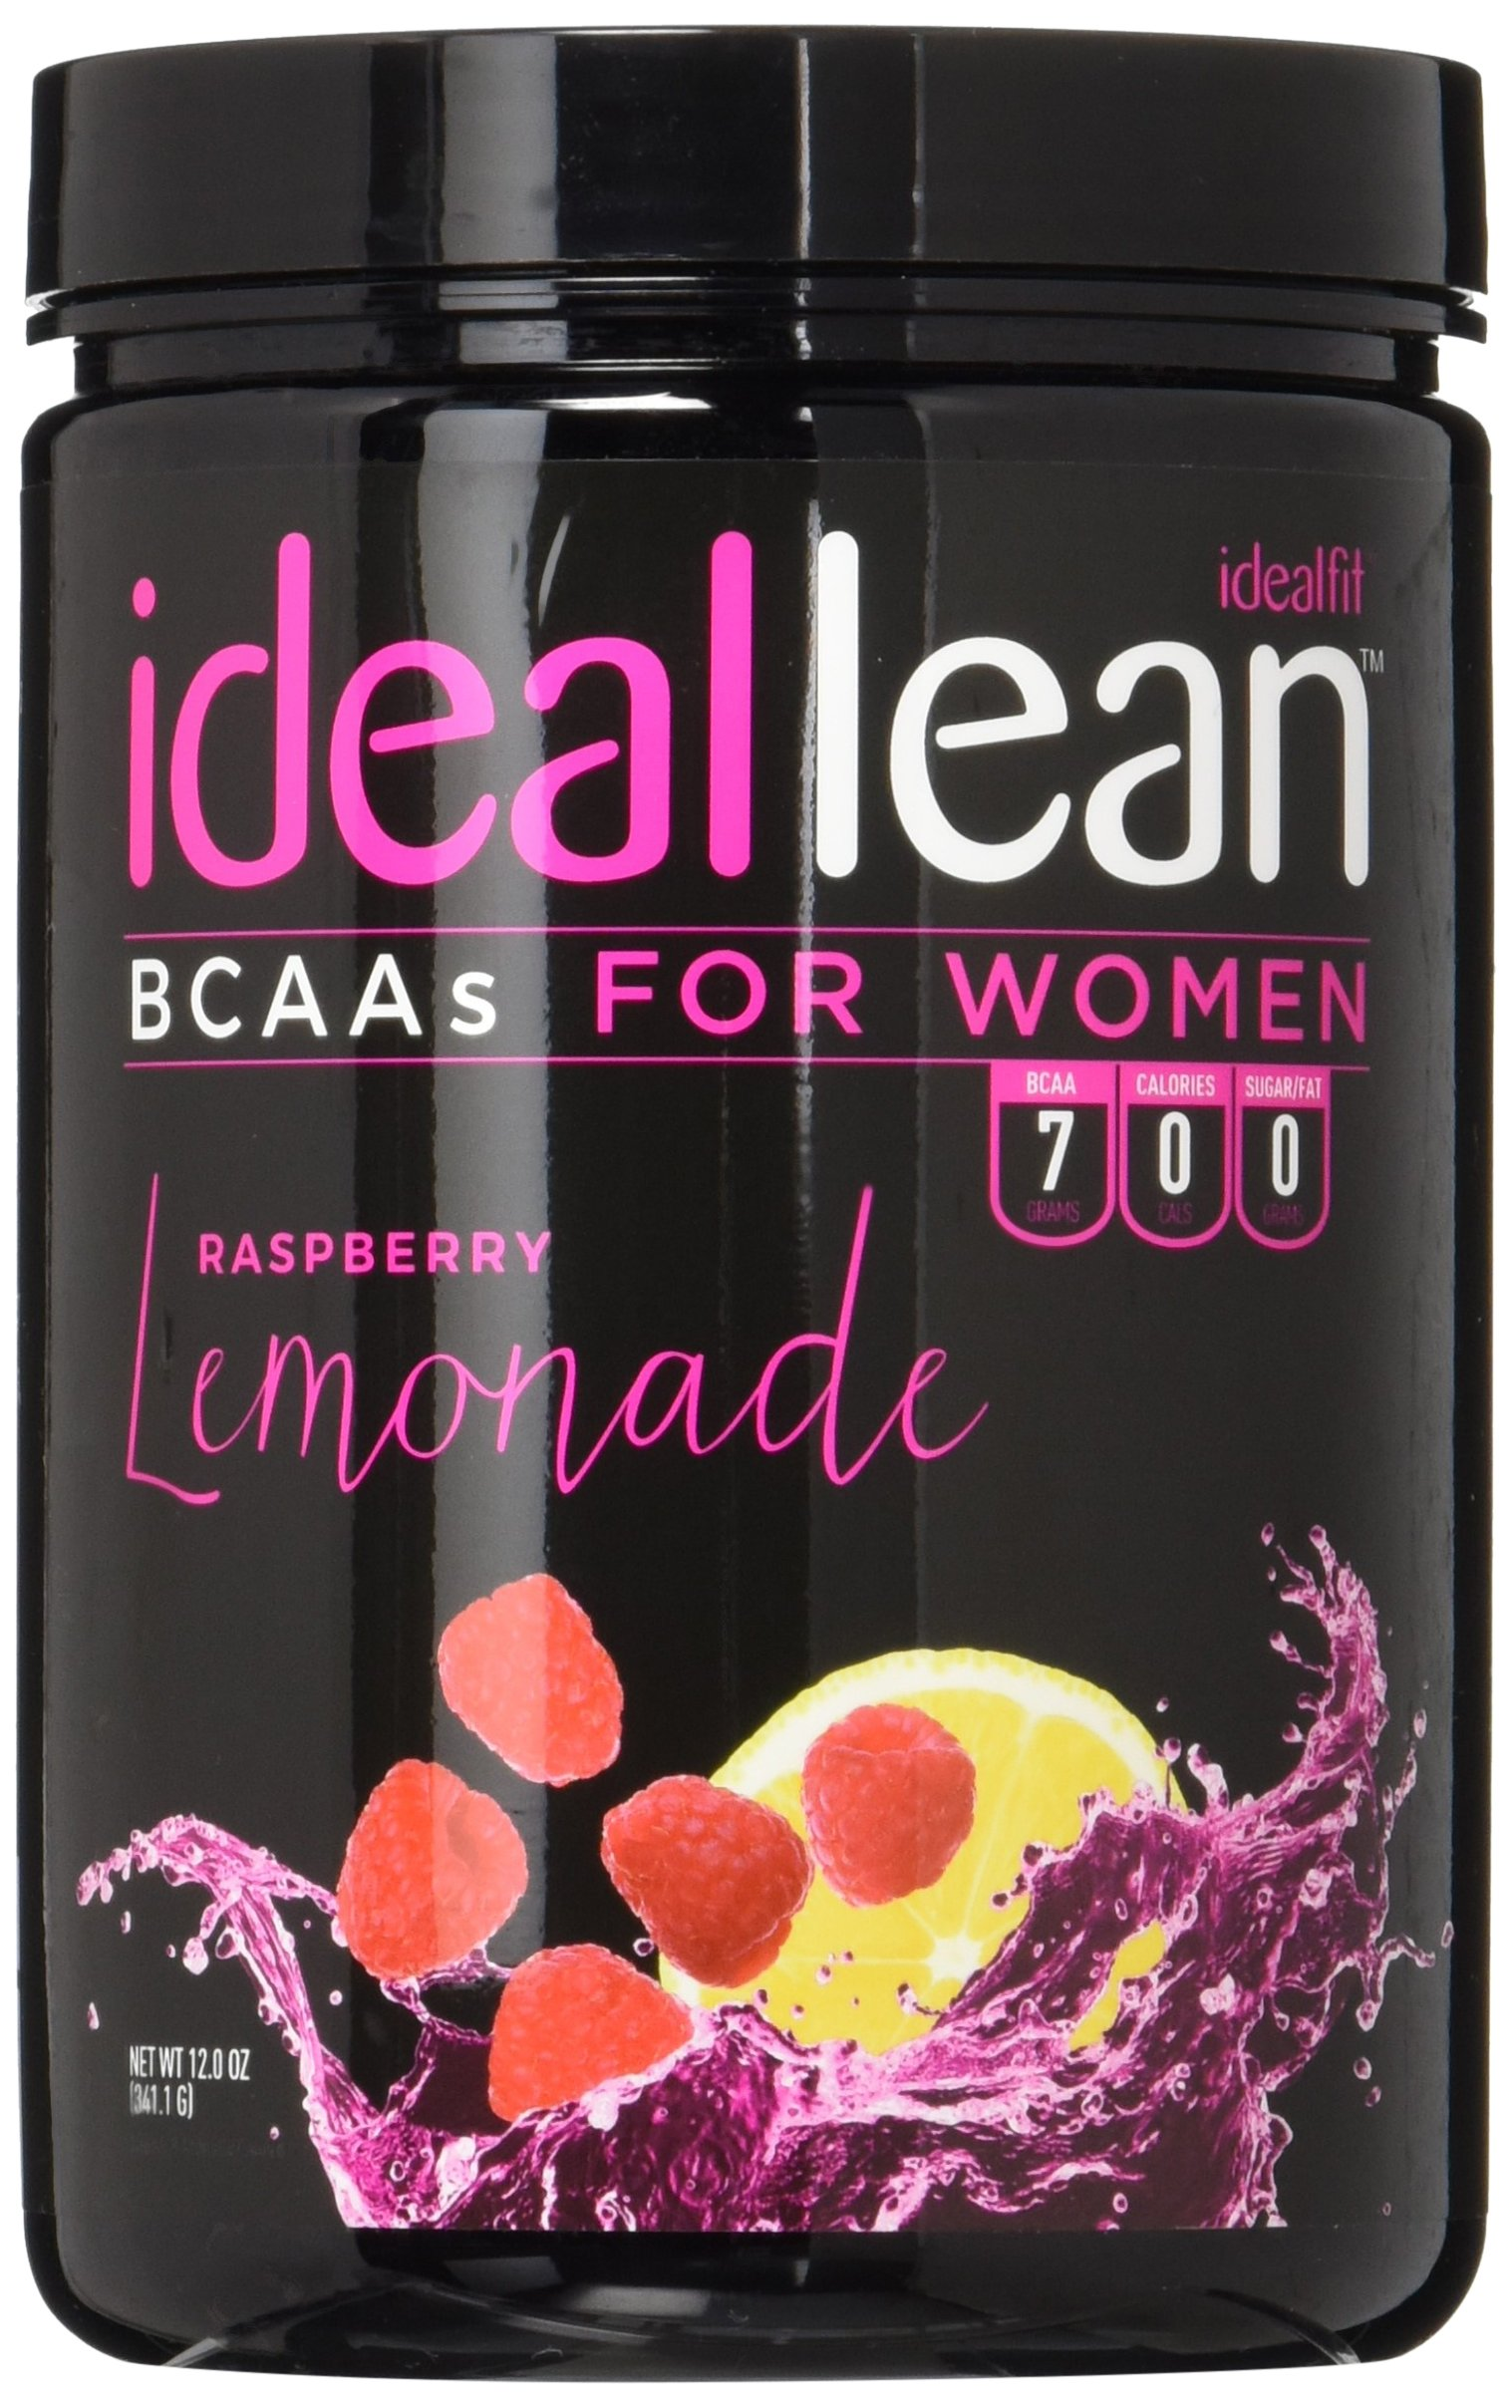 IdealLean, BCAAs For Women, Raspberry Lemonade - Build Lean Muscle Now with Branched Chain Amino Acid; Burn Fat with IdealLean's Fat Loss Blend; 0 Carbs, Sugars, and Calories, 30 Servings